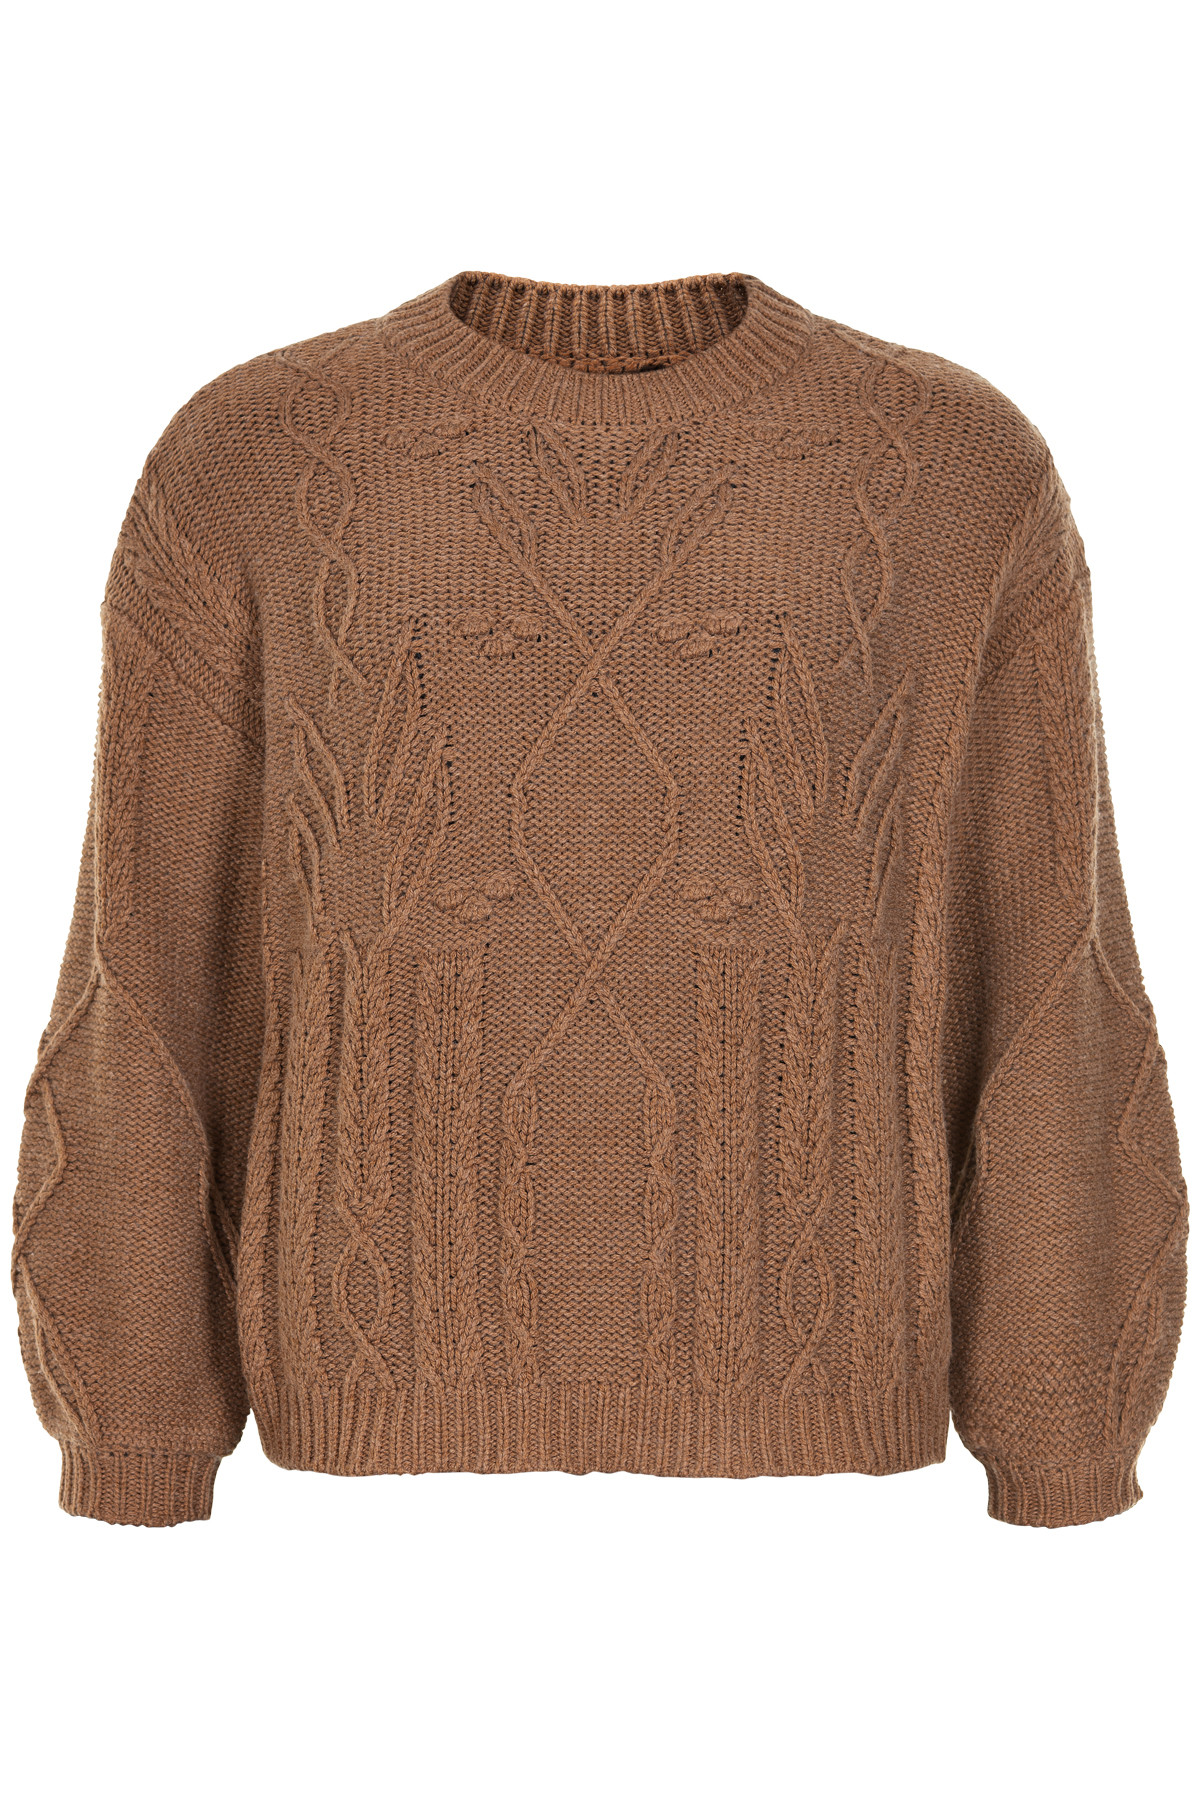 Image of   AND LESS AZENITH PULLOVER 5419205 (Dachshund, L)